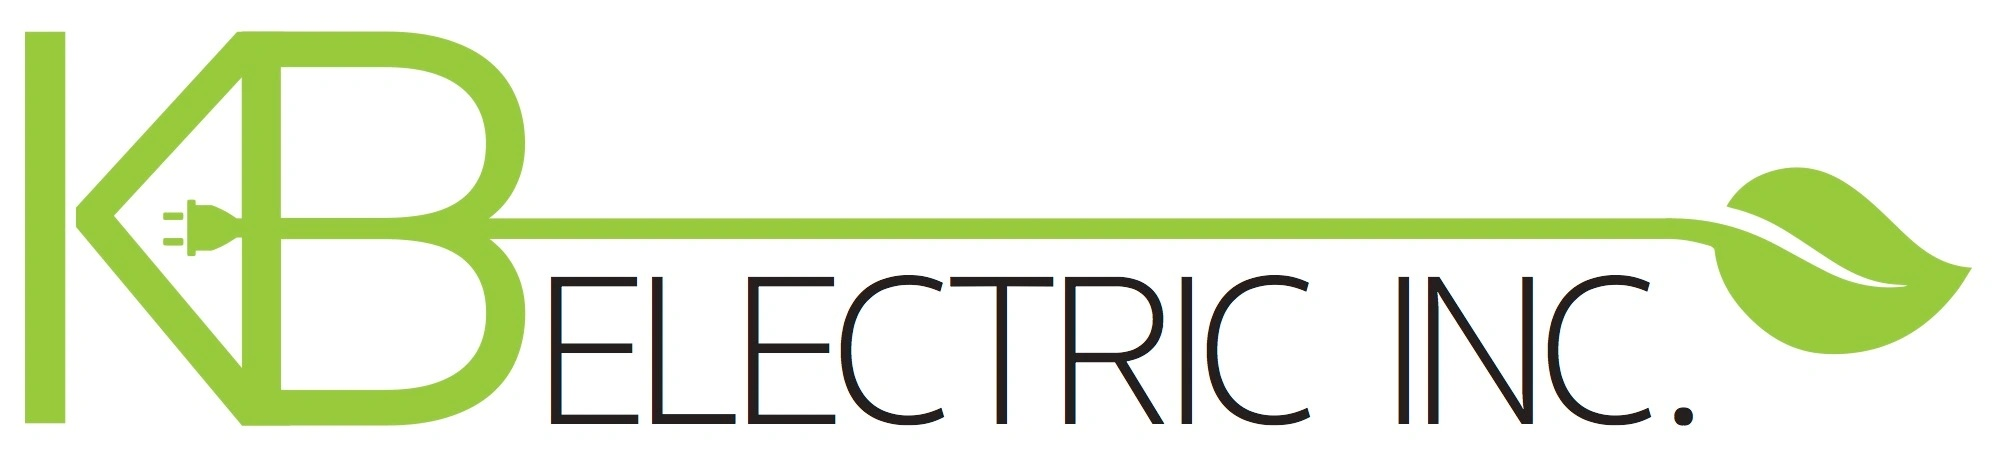 KB Electric Inc.